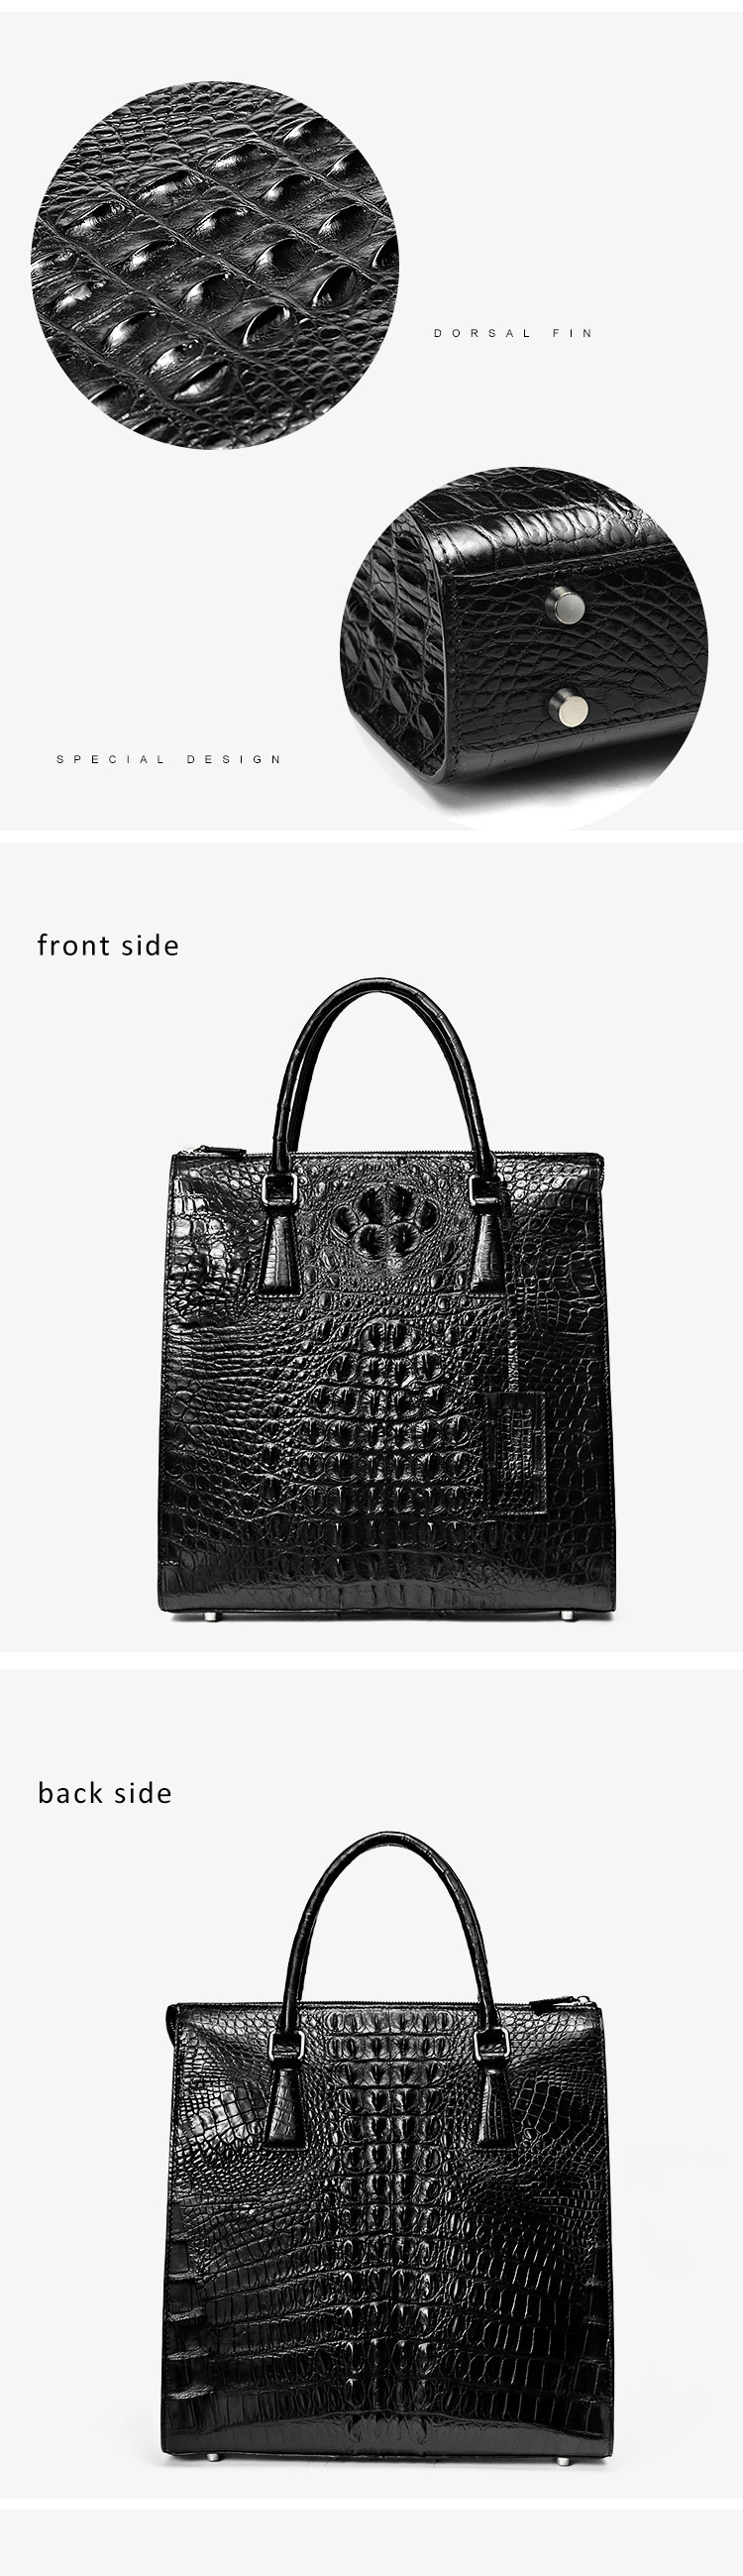 crocodile briefcase1 (5).jpg